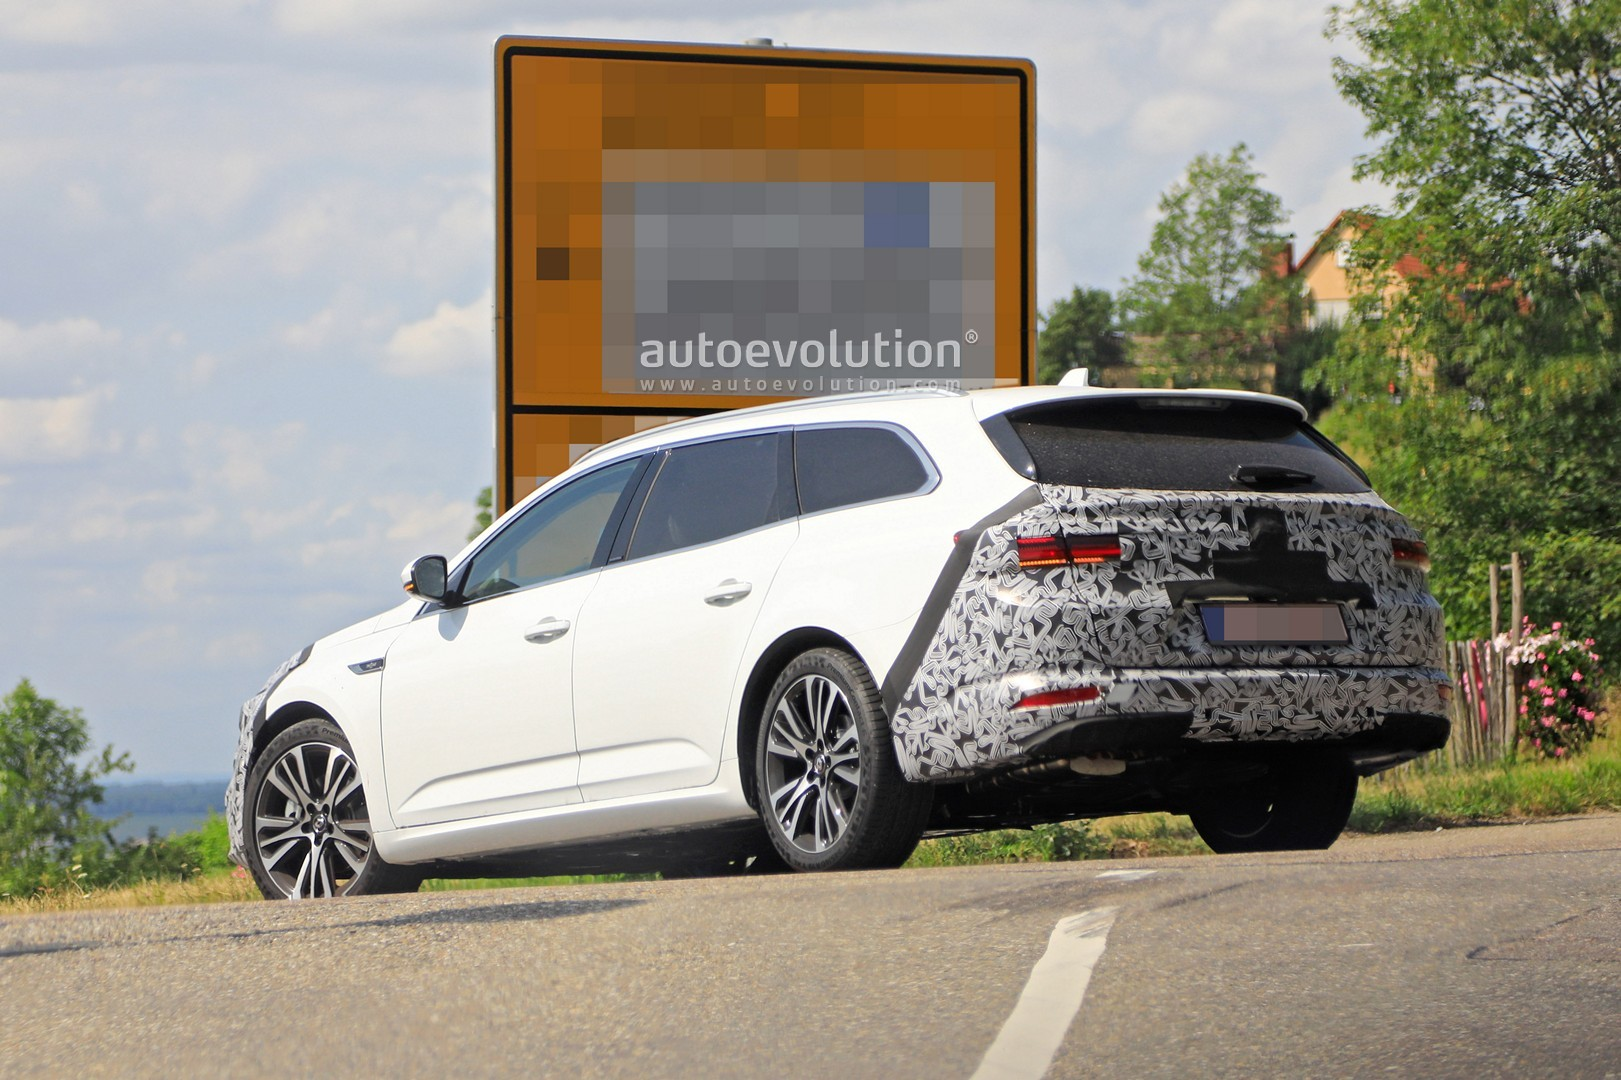 2020 - [Renault] Talisman restylée - Page 8 2021-renault-talisman-wagon-spied-for-the-first-time-with-facelift_10